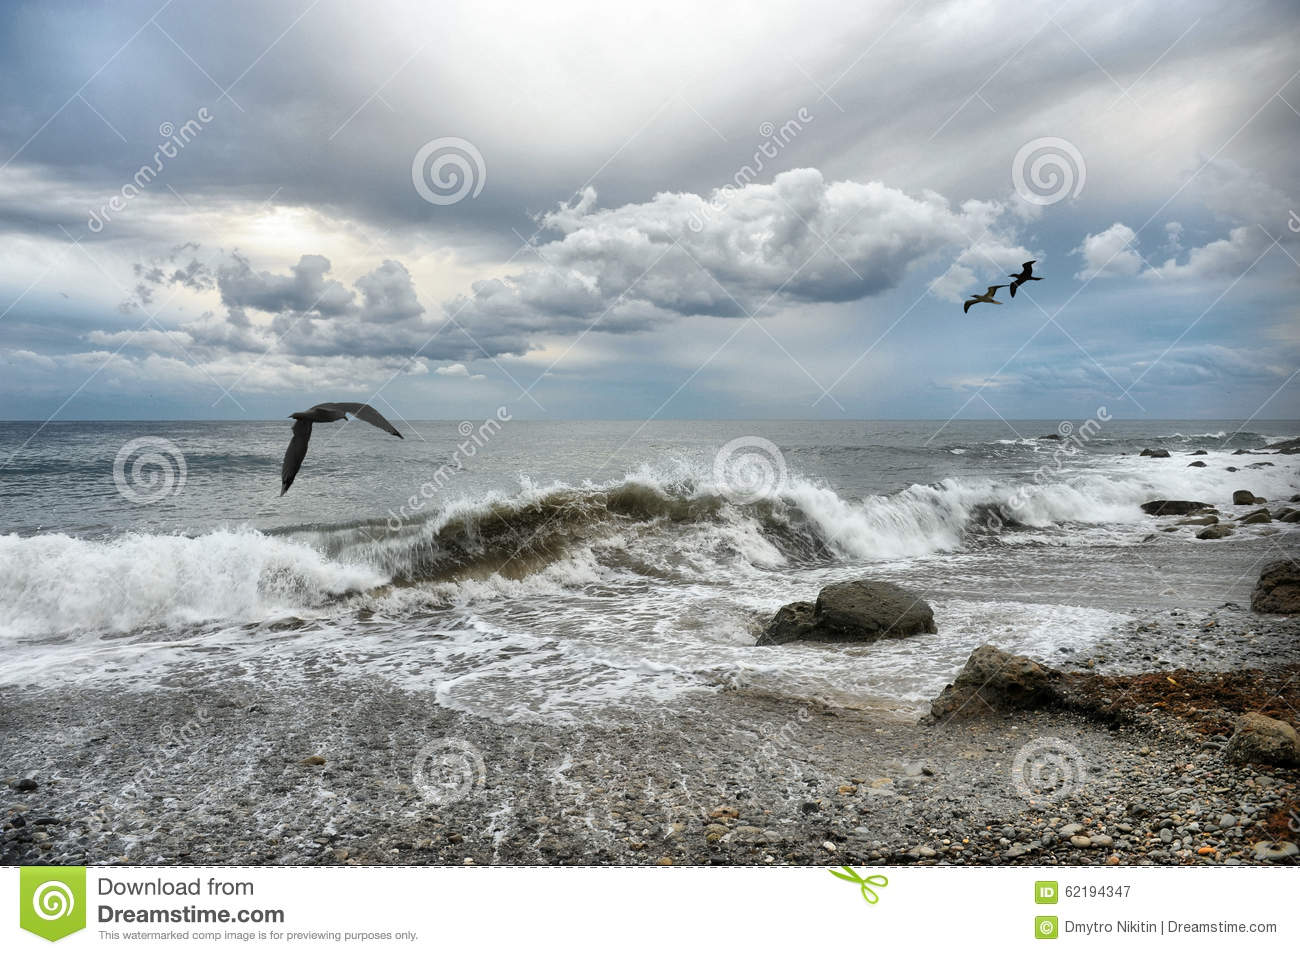 Surf in cloudy weather